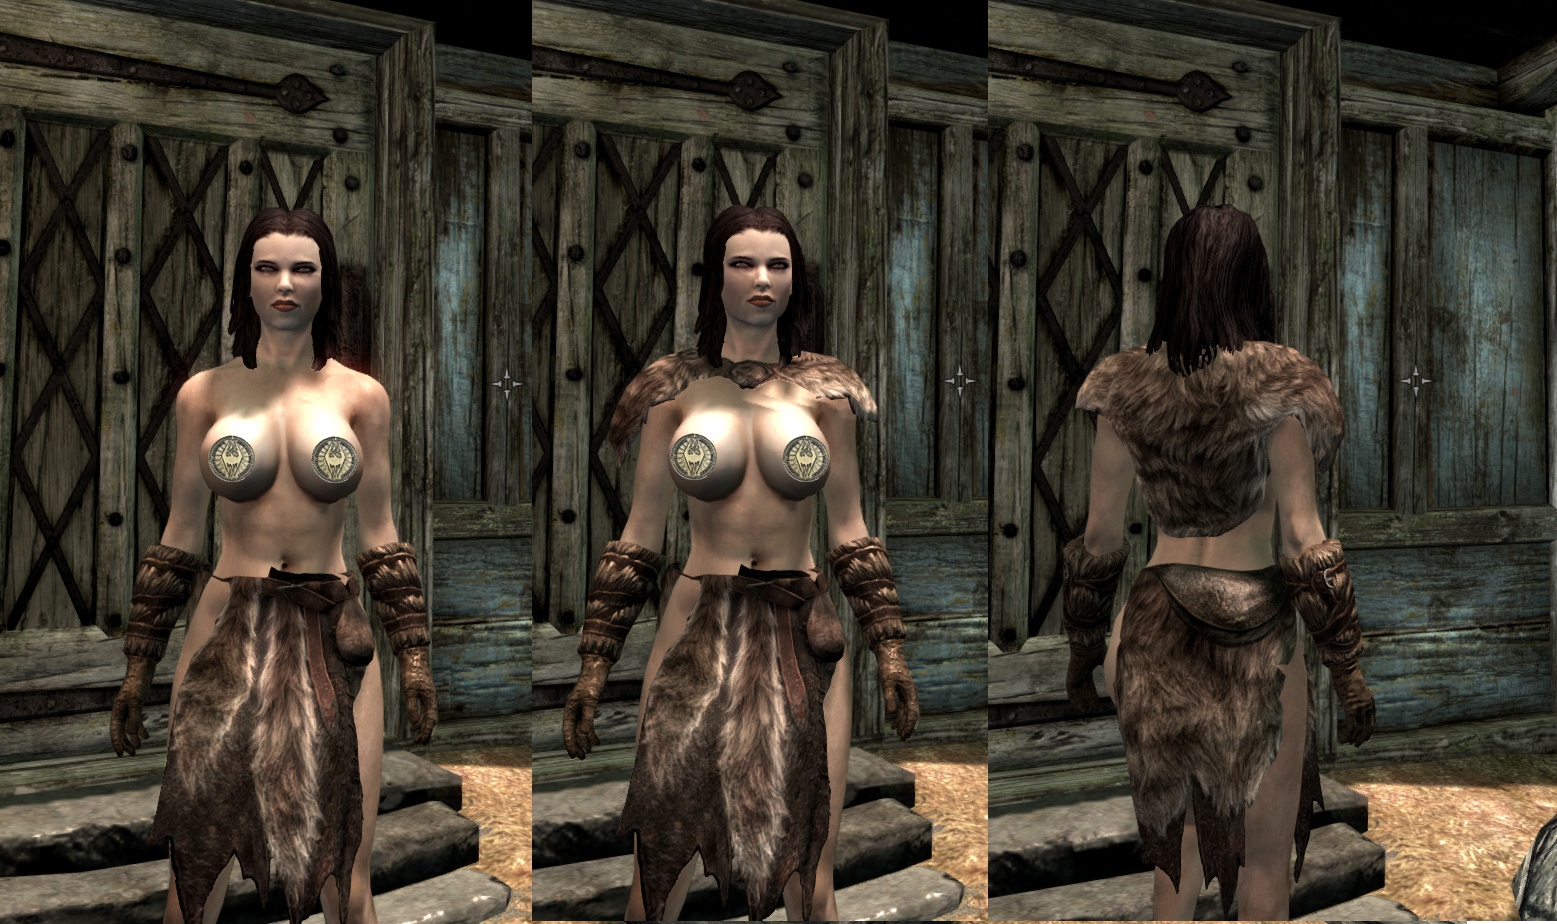 Oblivion nudity mod exposed movie